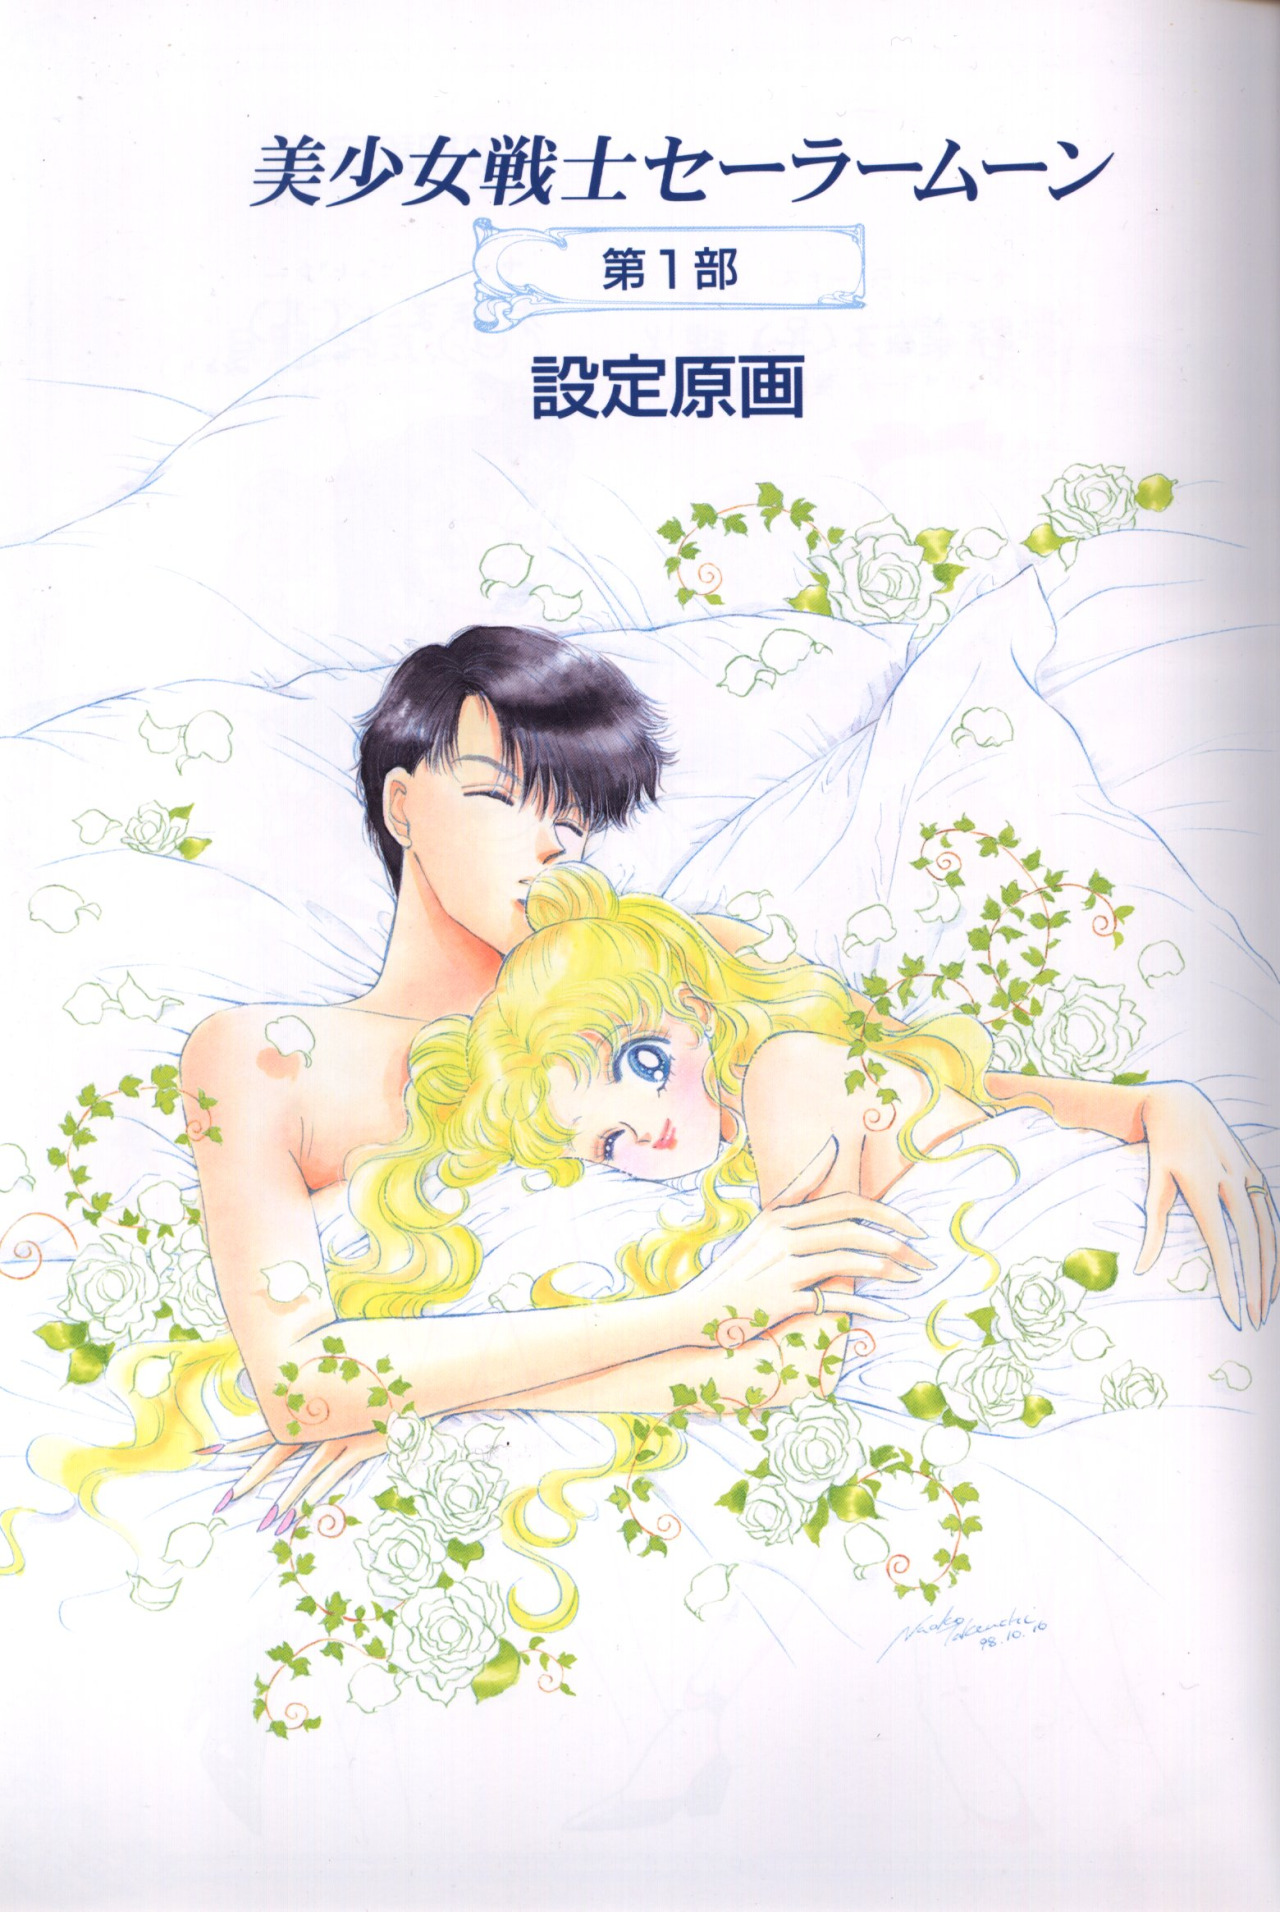 Manga: Sailor Moon